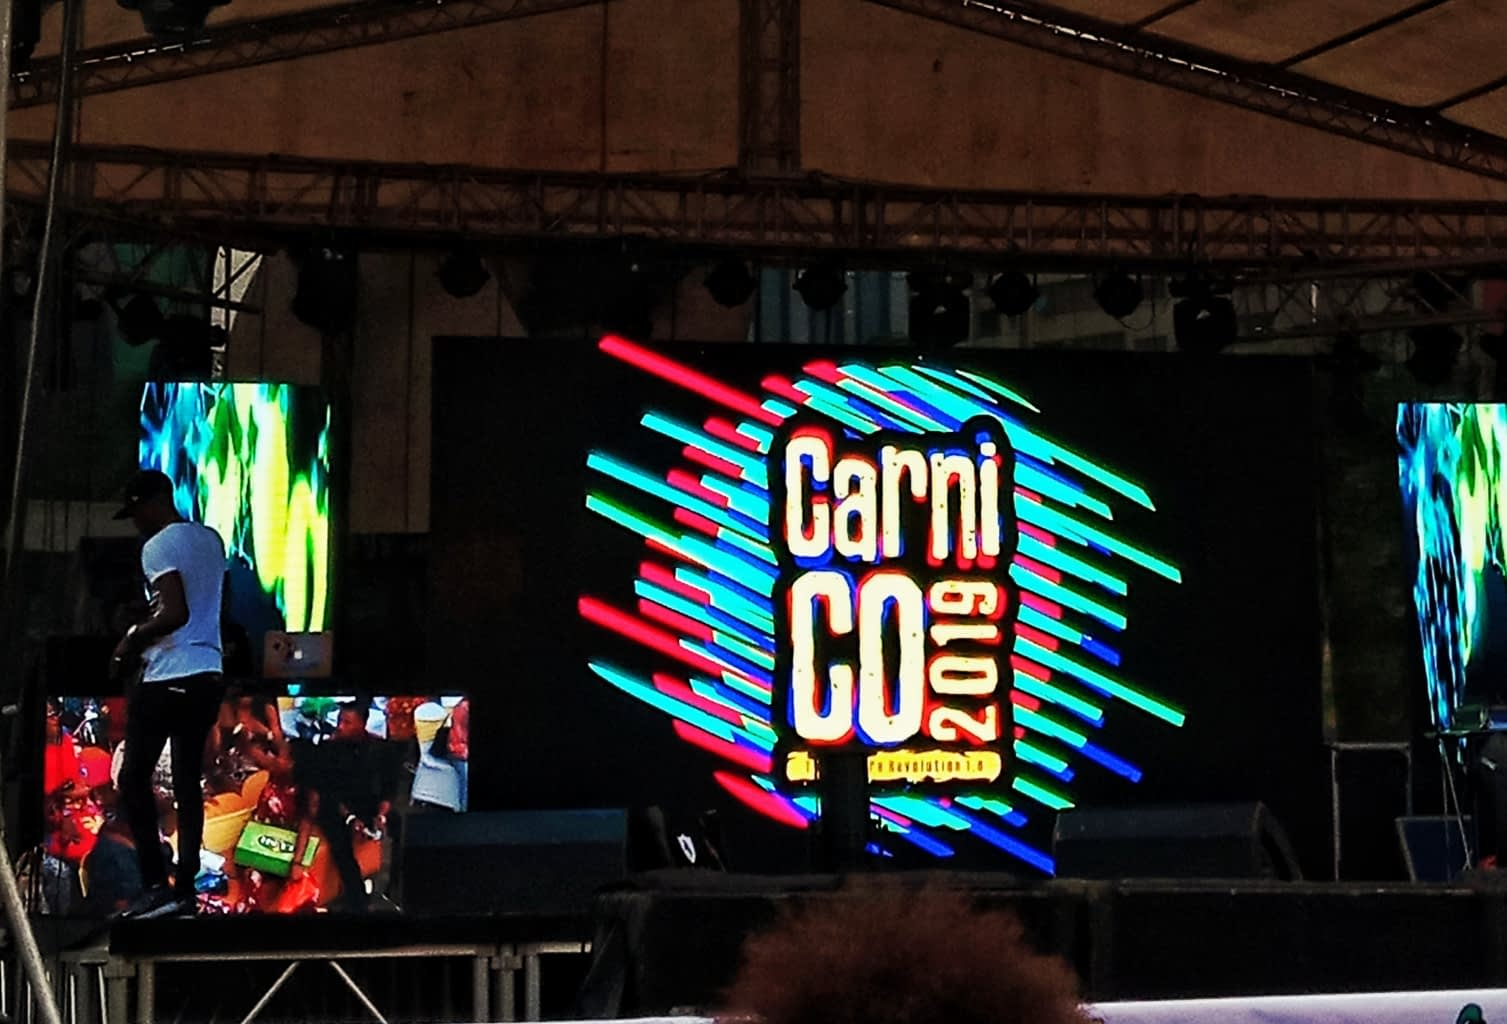 What is your Lagos story - Carnico Festival